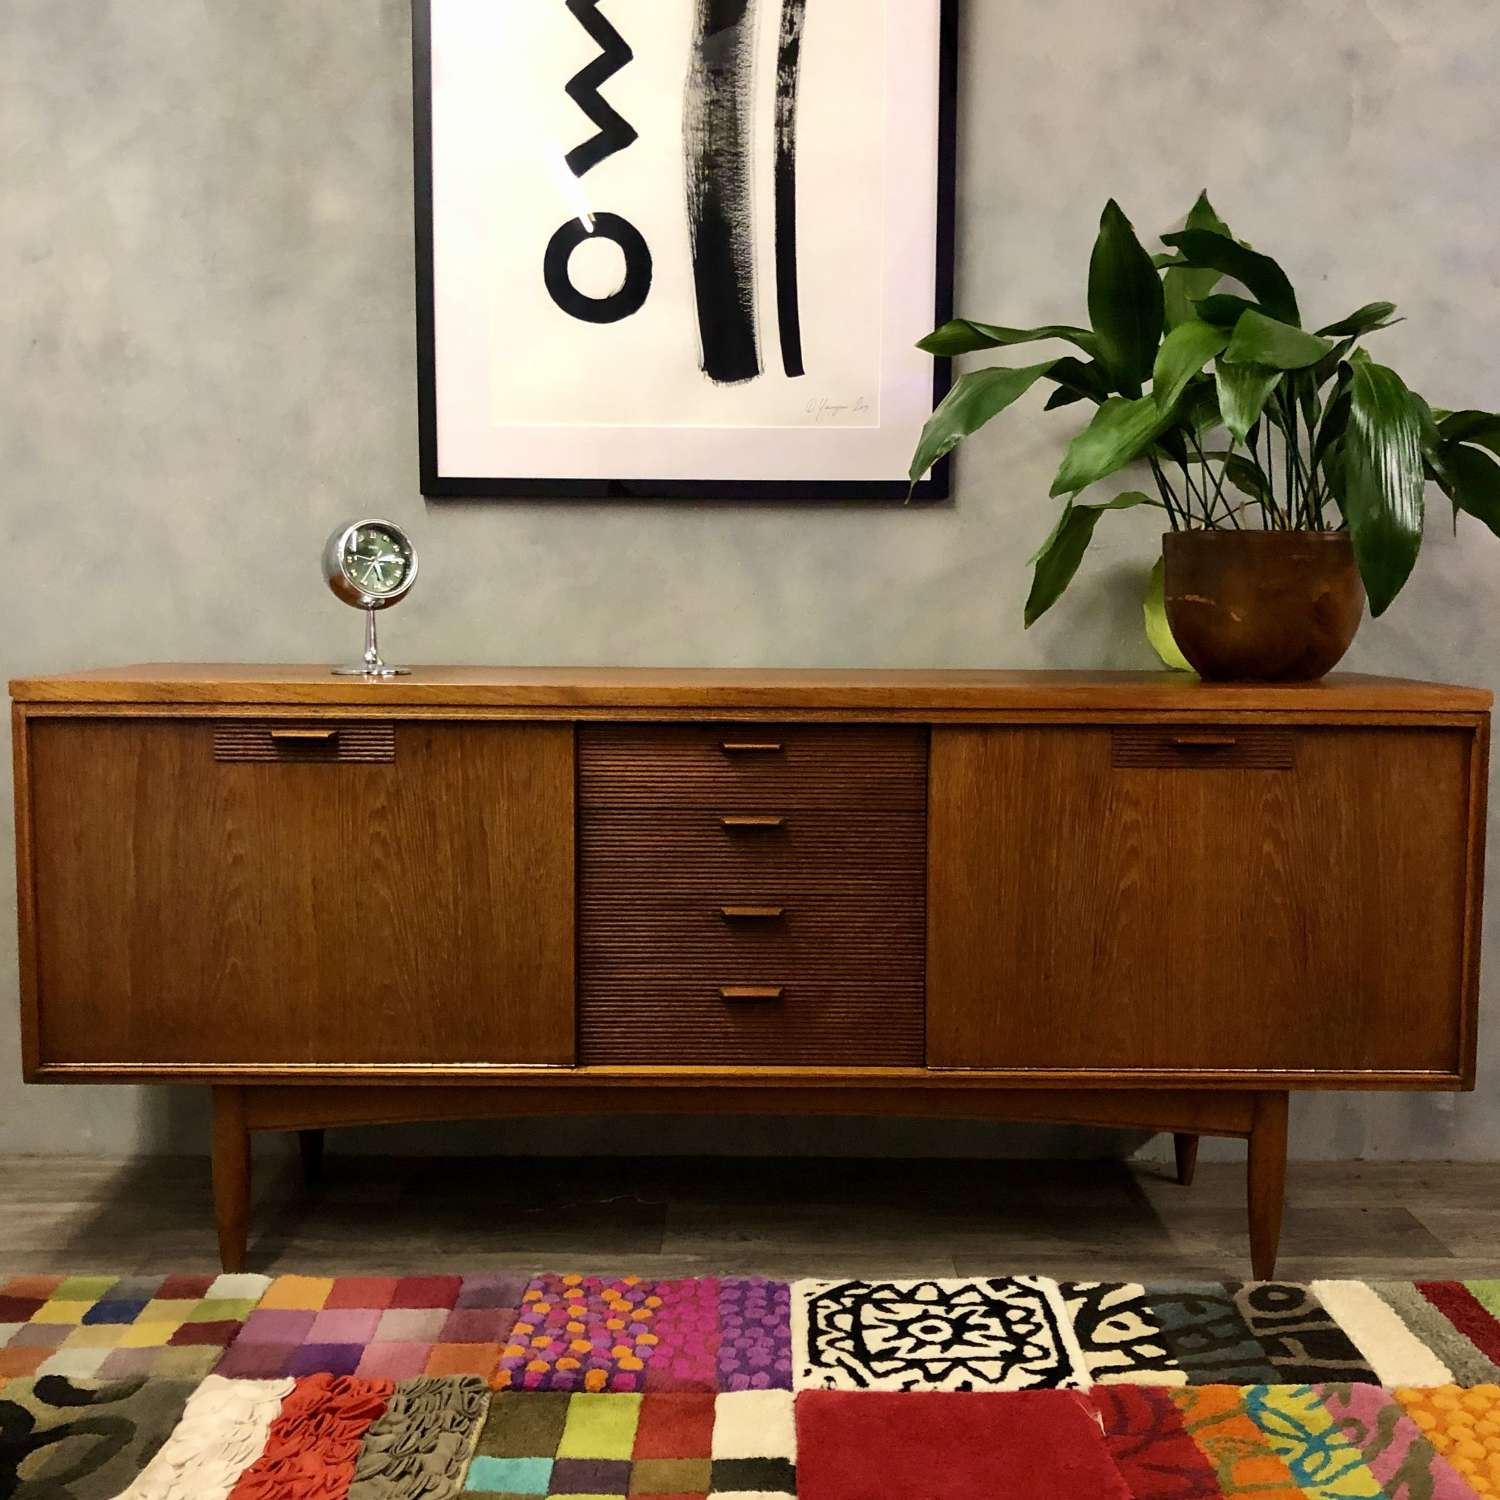 Midcentury sideboard by Dalescraft